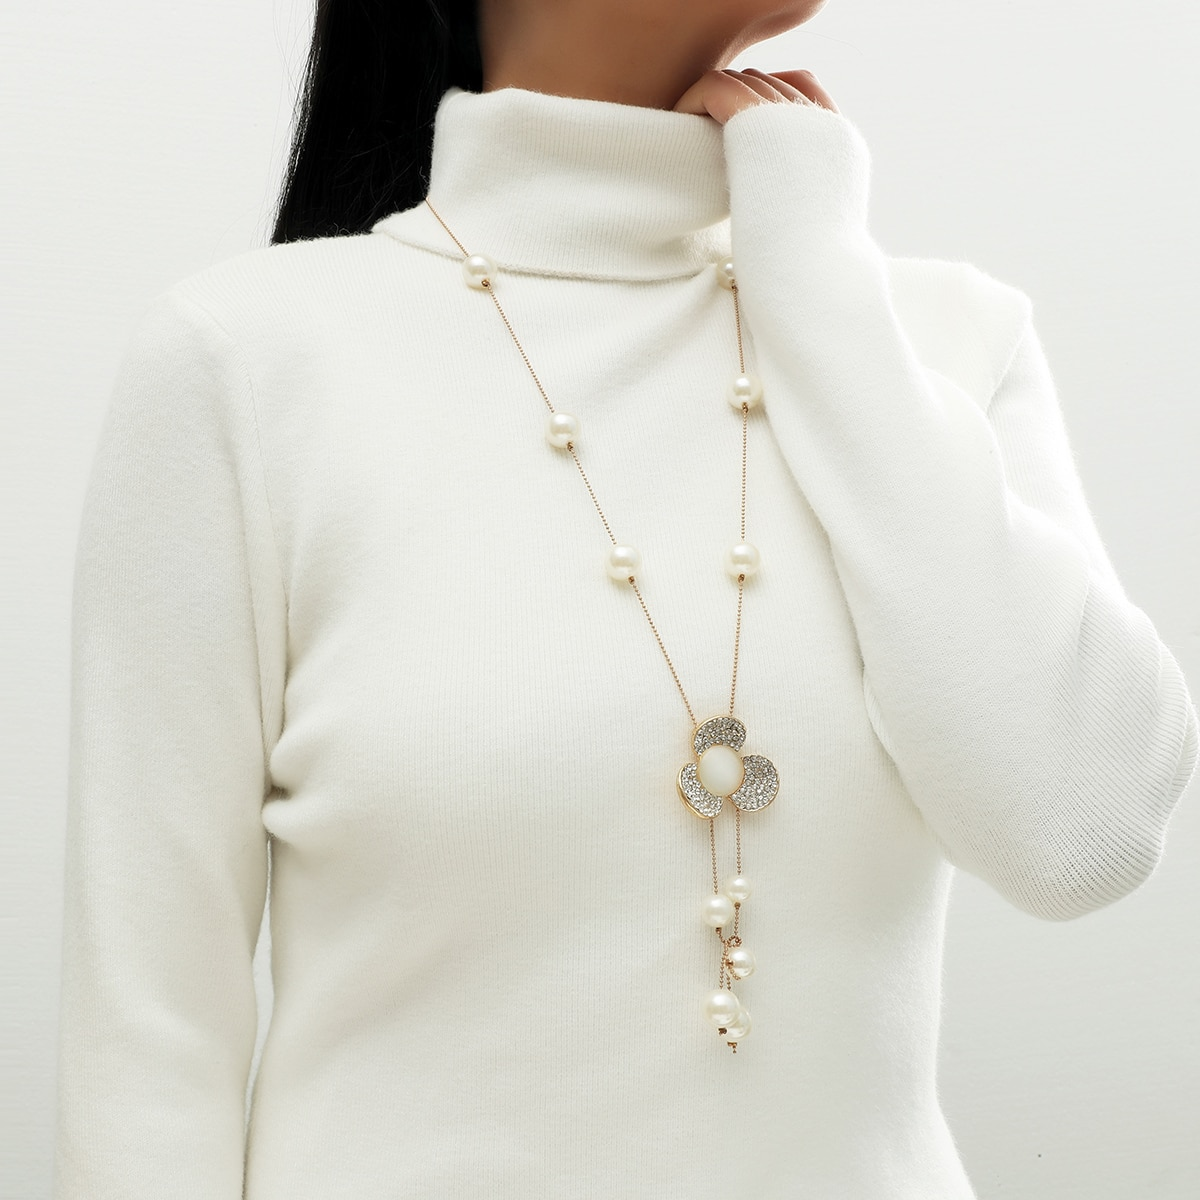 Faux Pearl & Flower Charm Necklace, SHEIN  - buy with discount